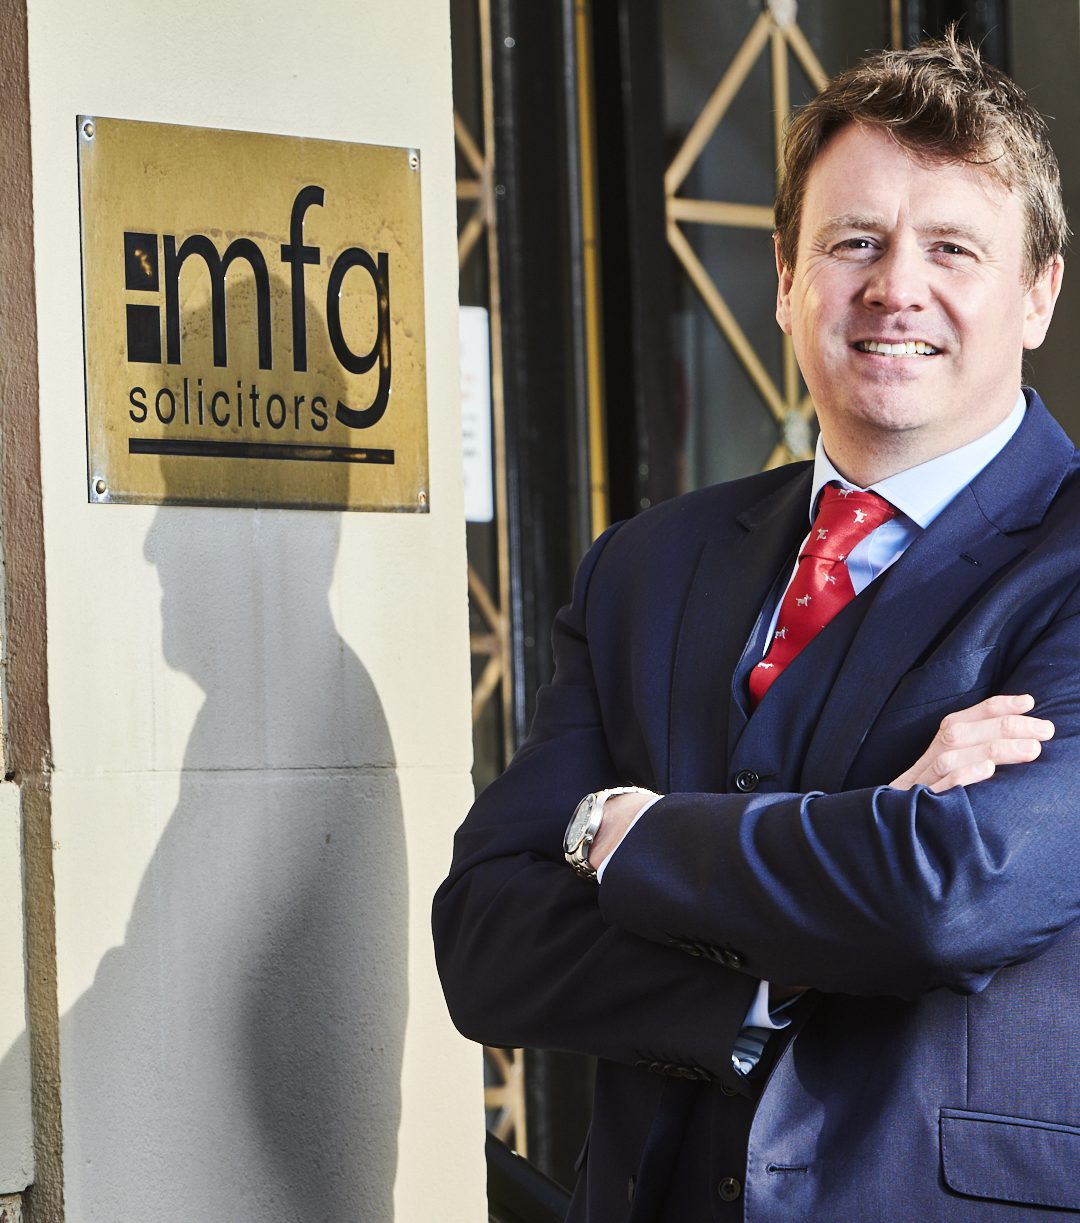 Law Firm Appoints New Partner as Private Client Team Expands